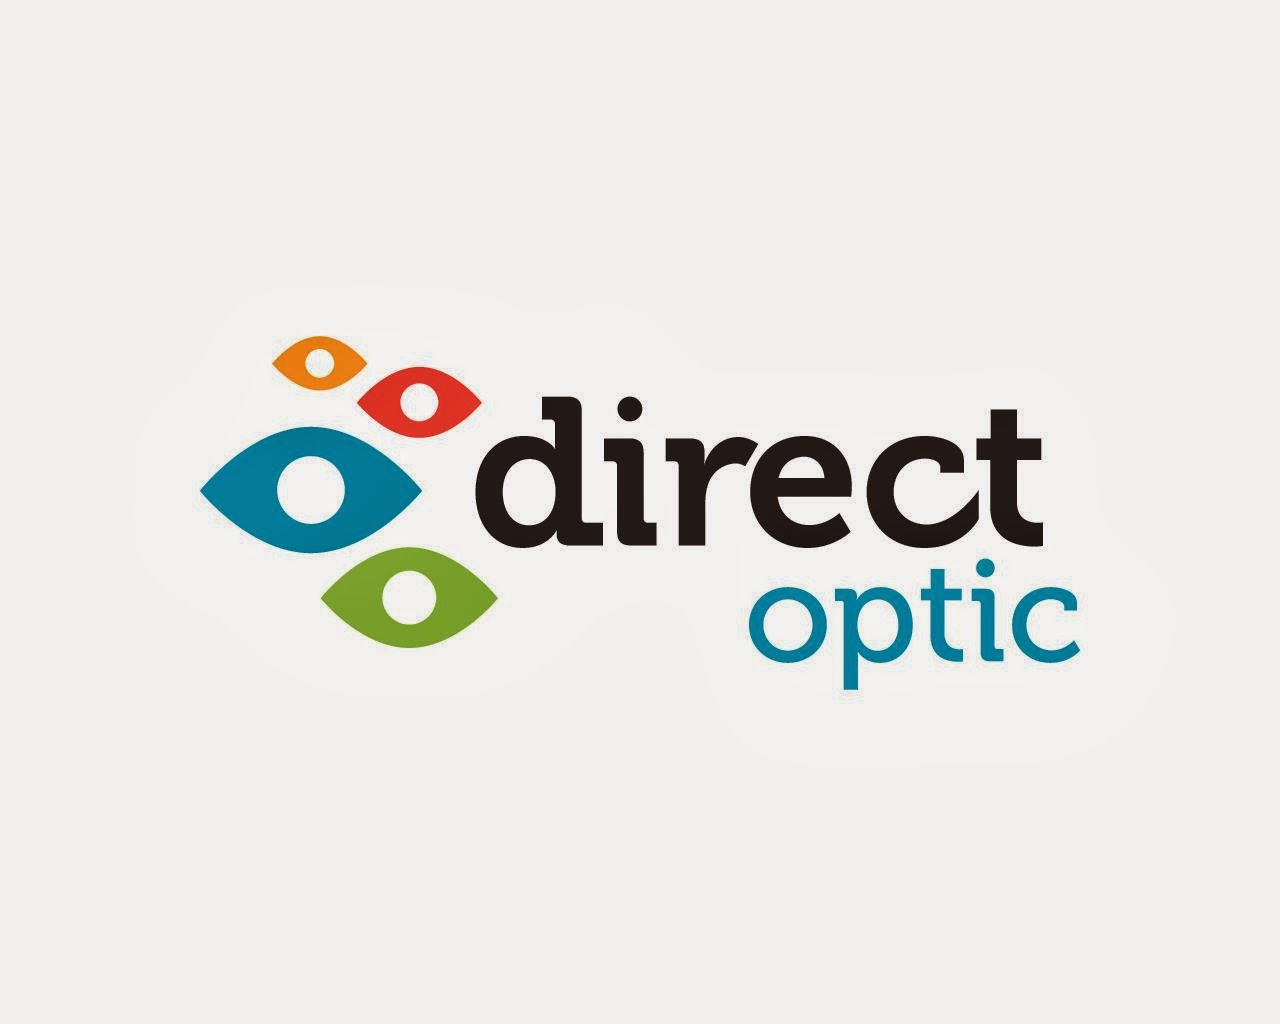 direct optic